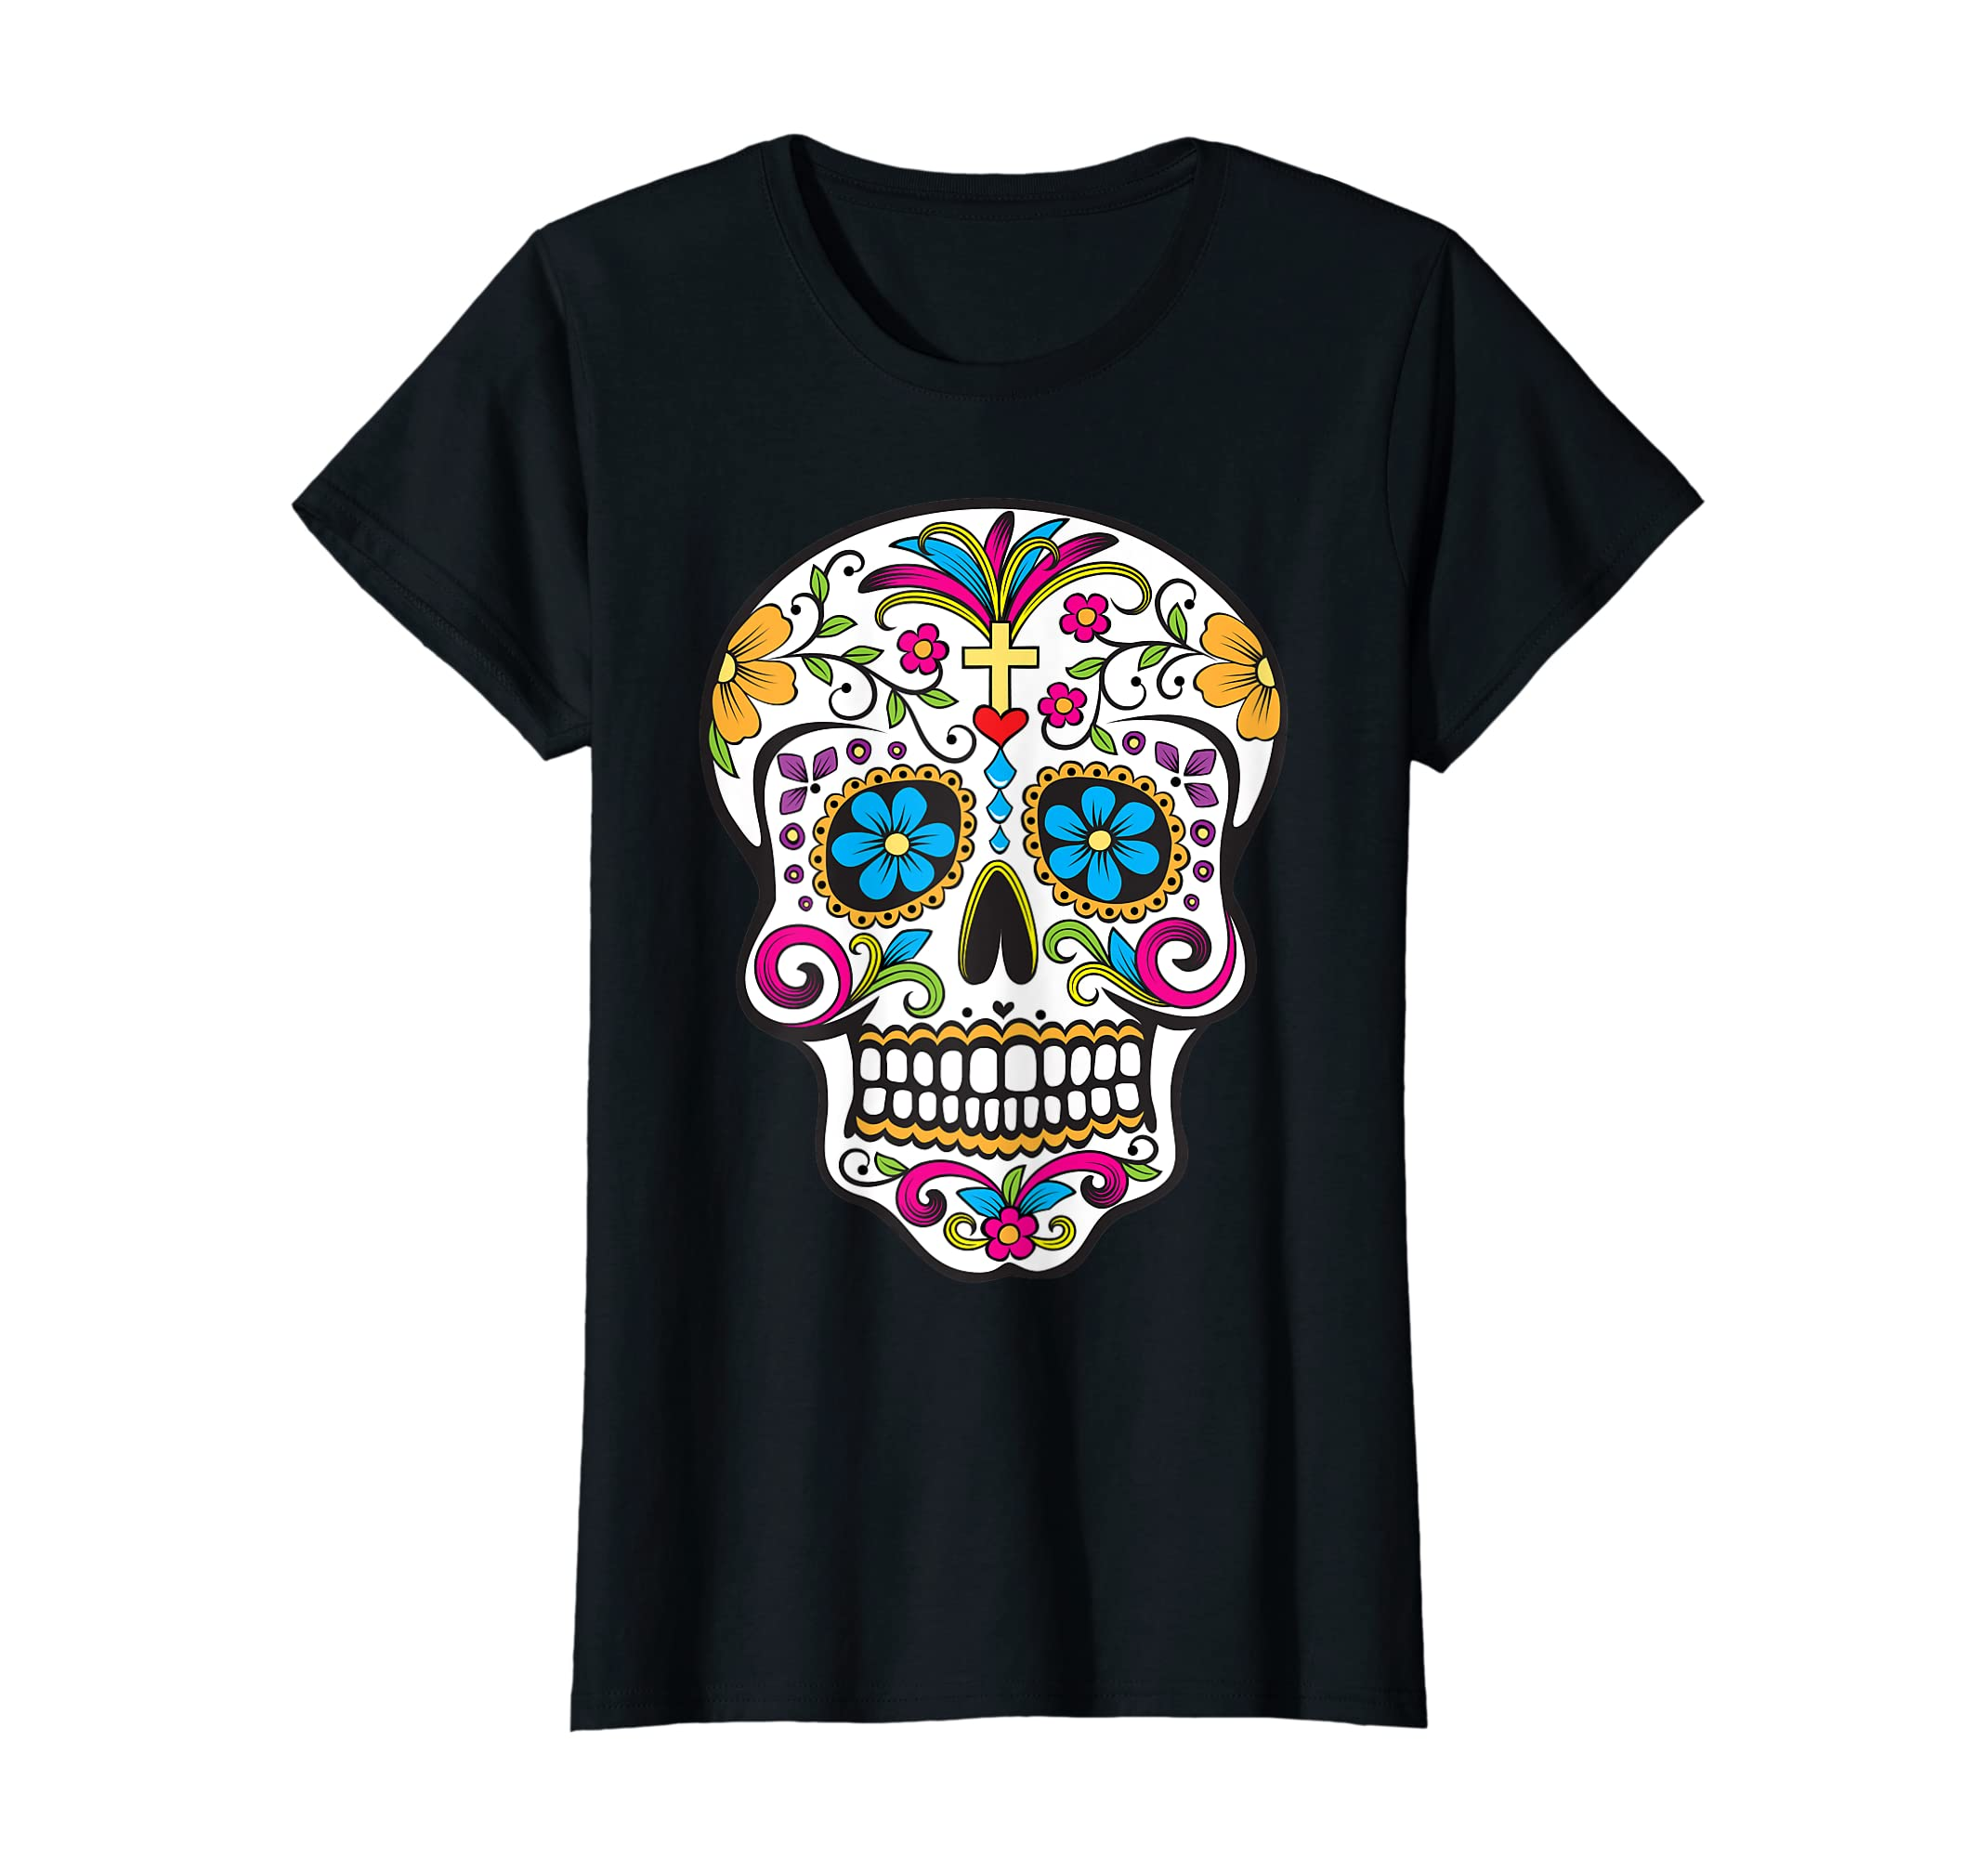 c84a413b19d Amazon.com  Day of the Dead Sugar Skull T-Shirt  Clothing